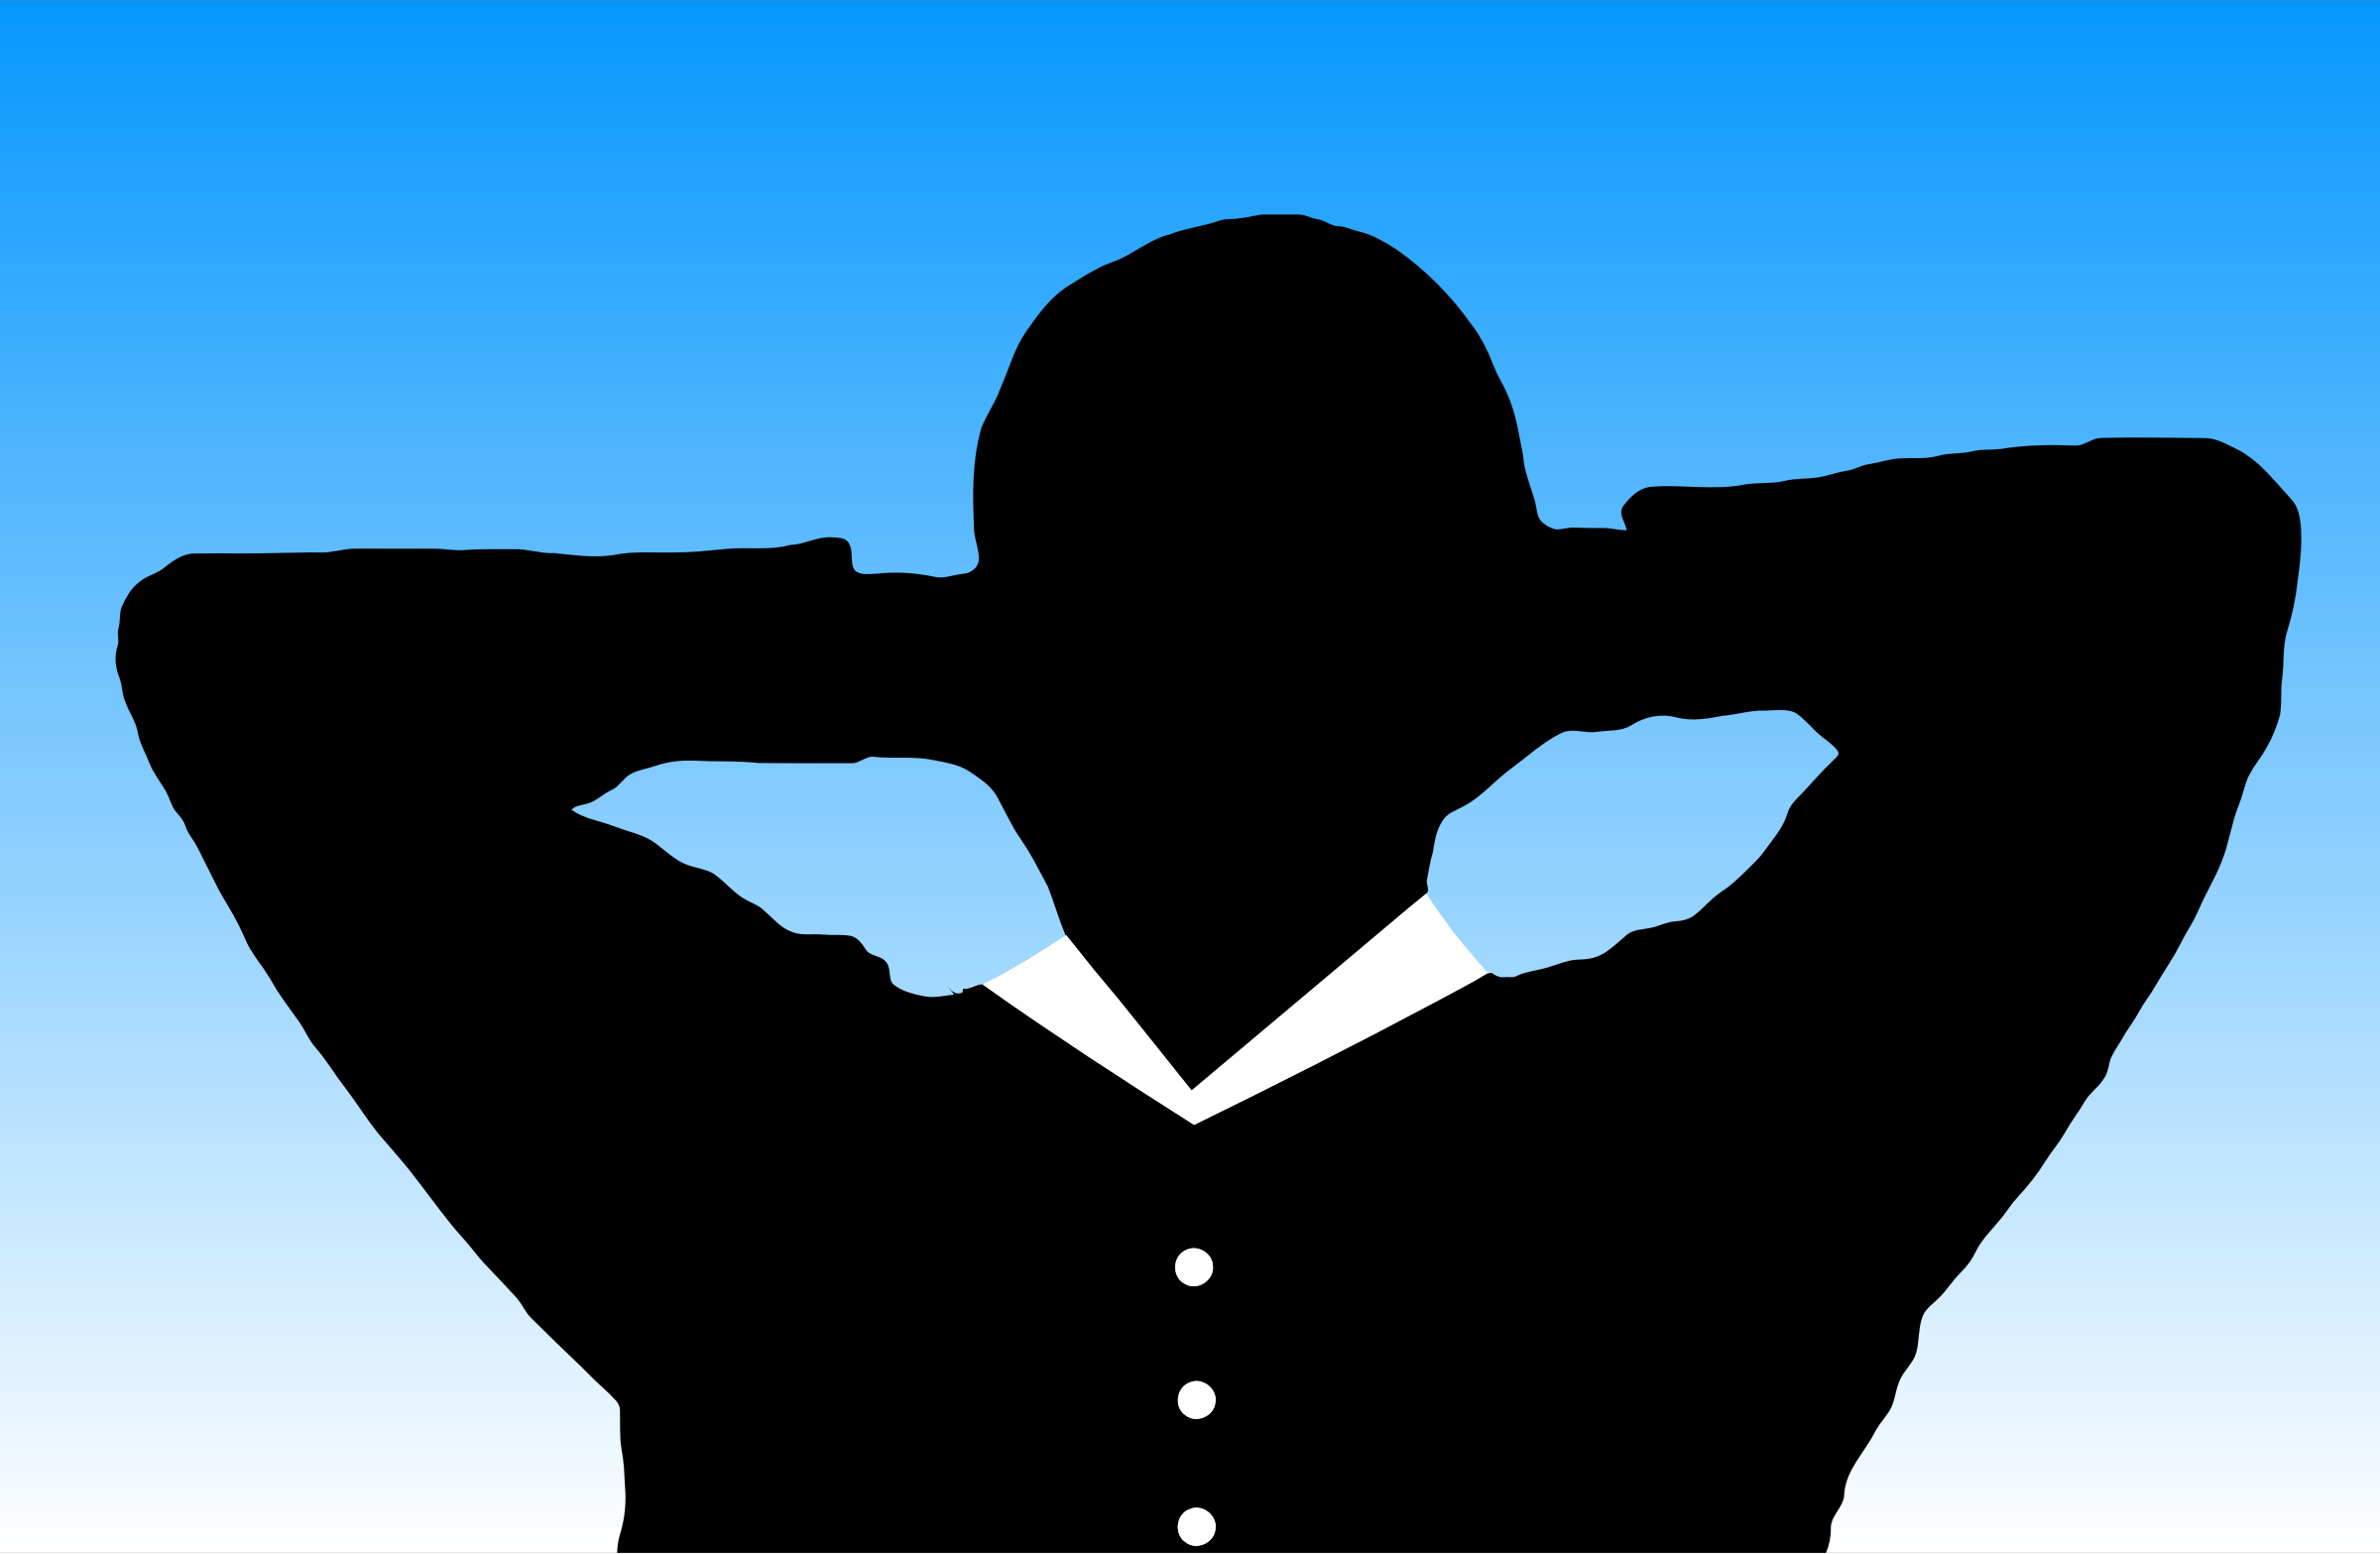 2400x1567 Man Relaxing With Hands Behind Head Silhouette With Background